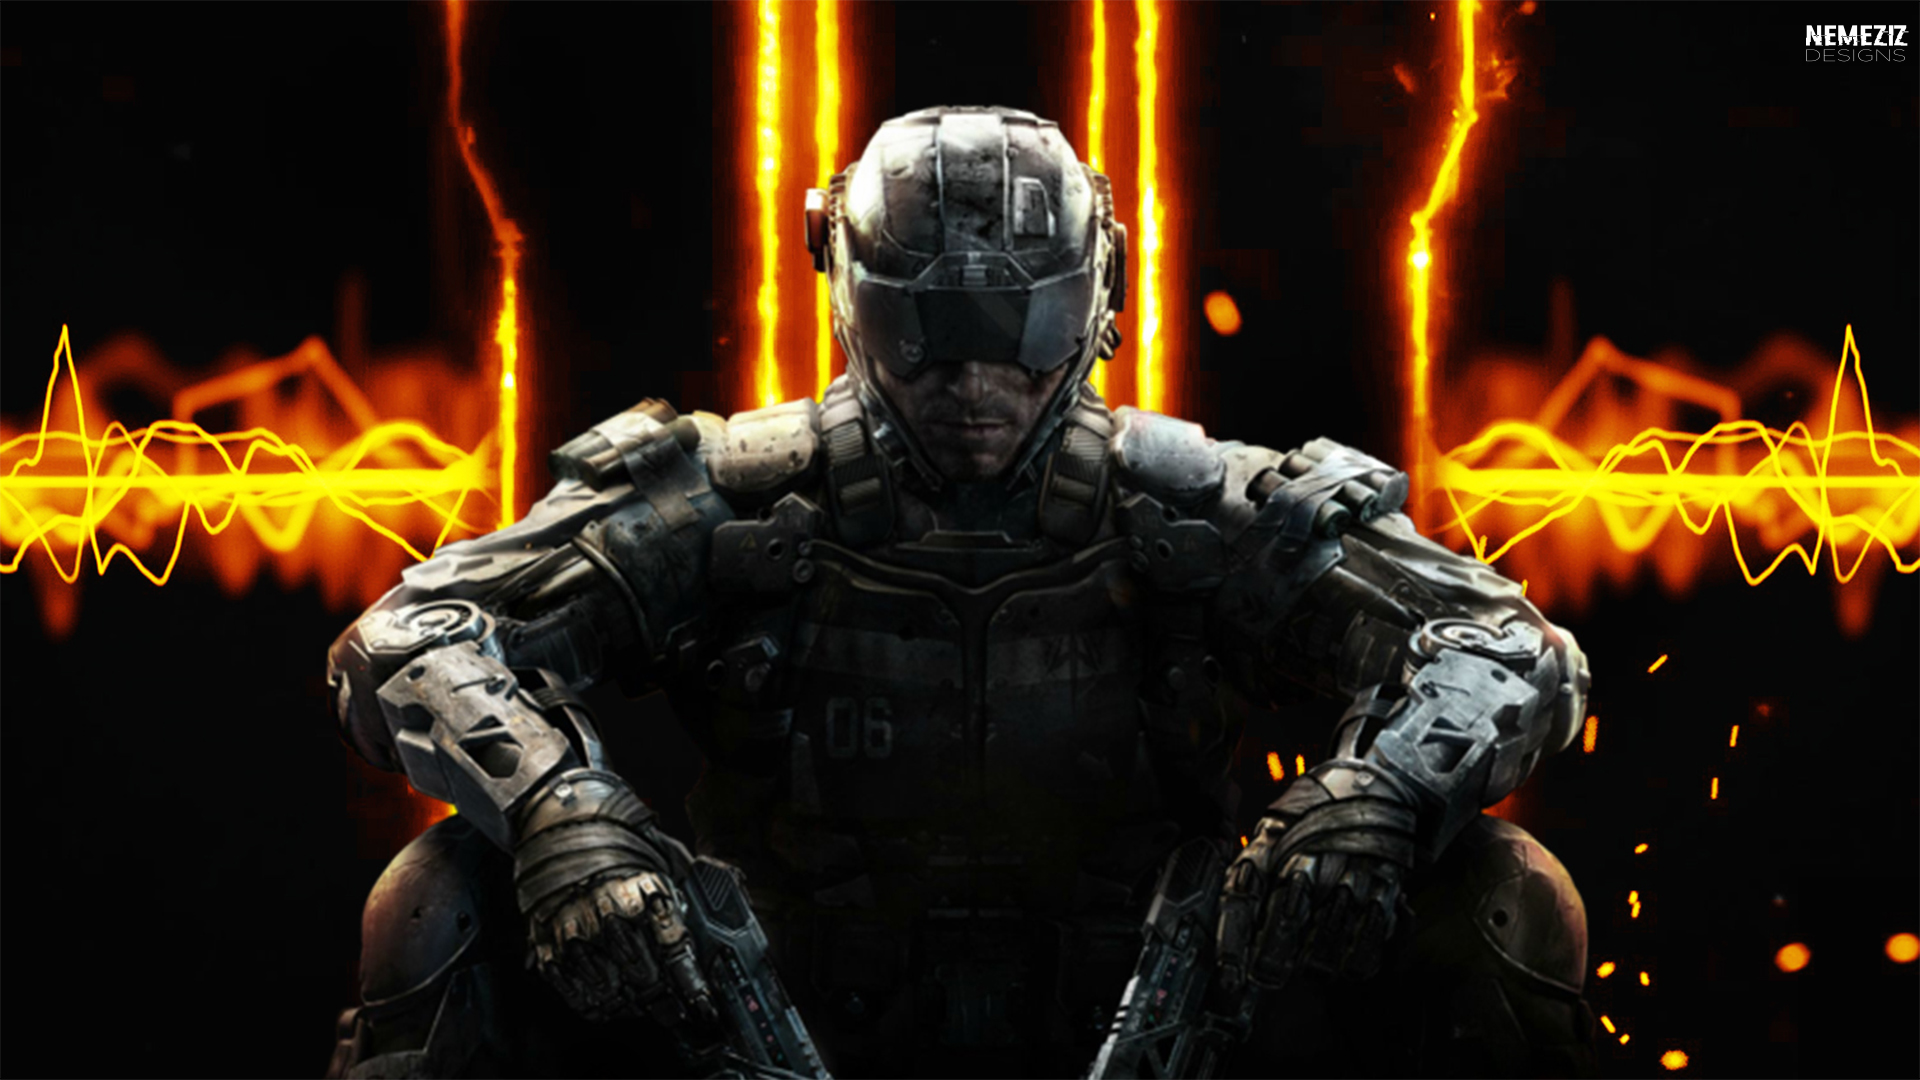 50 Black Ops 3 Wallpaper 1080p On Wallpapersafari